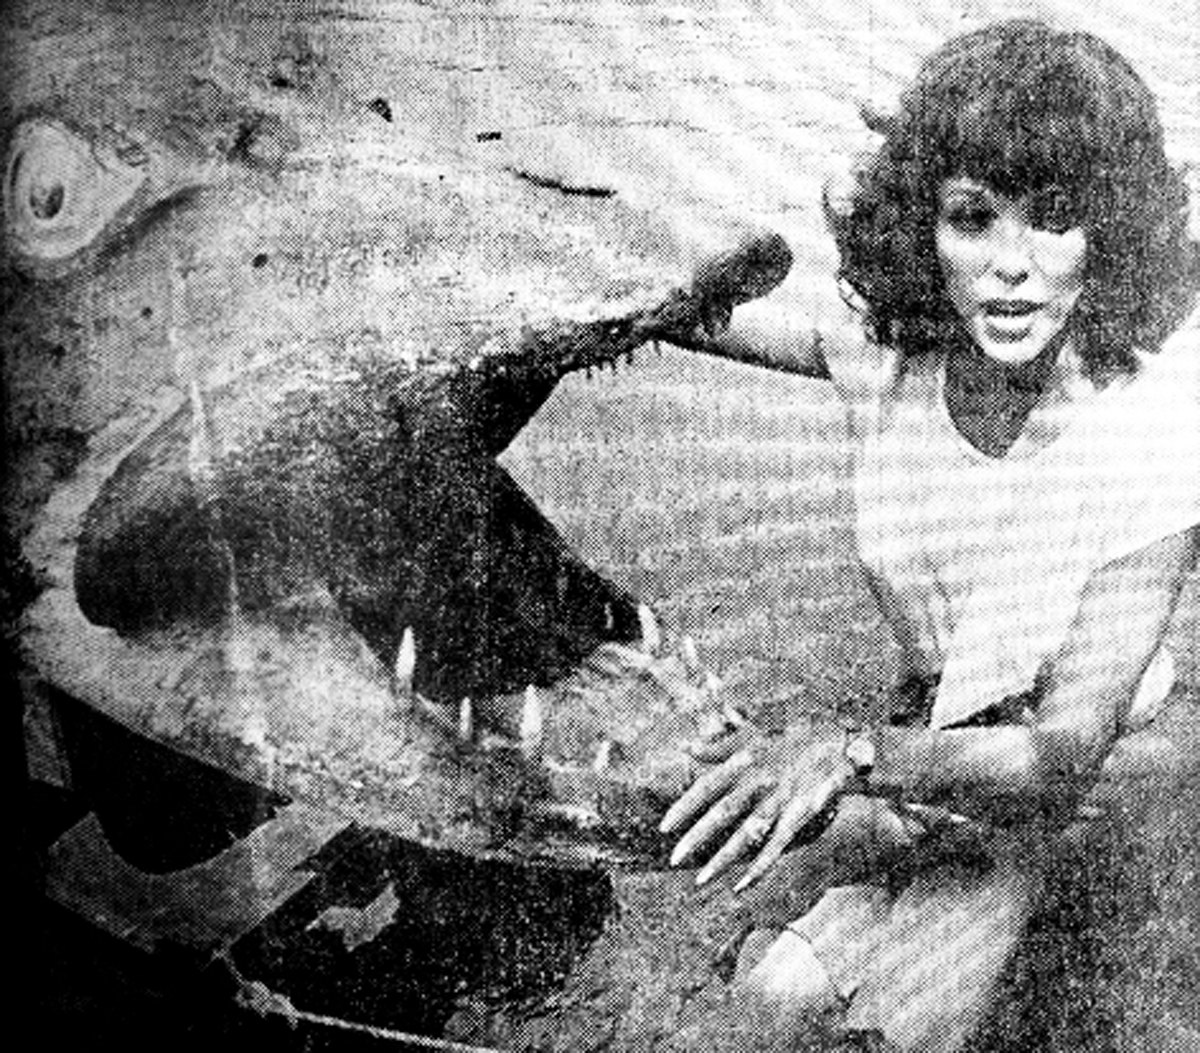 Joan Collins with the giant mechanical pike